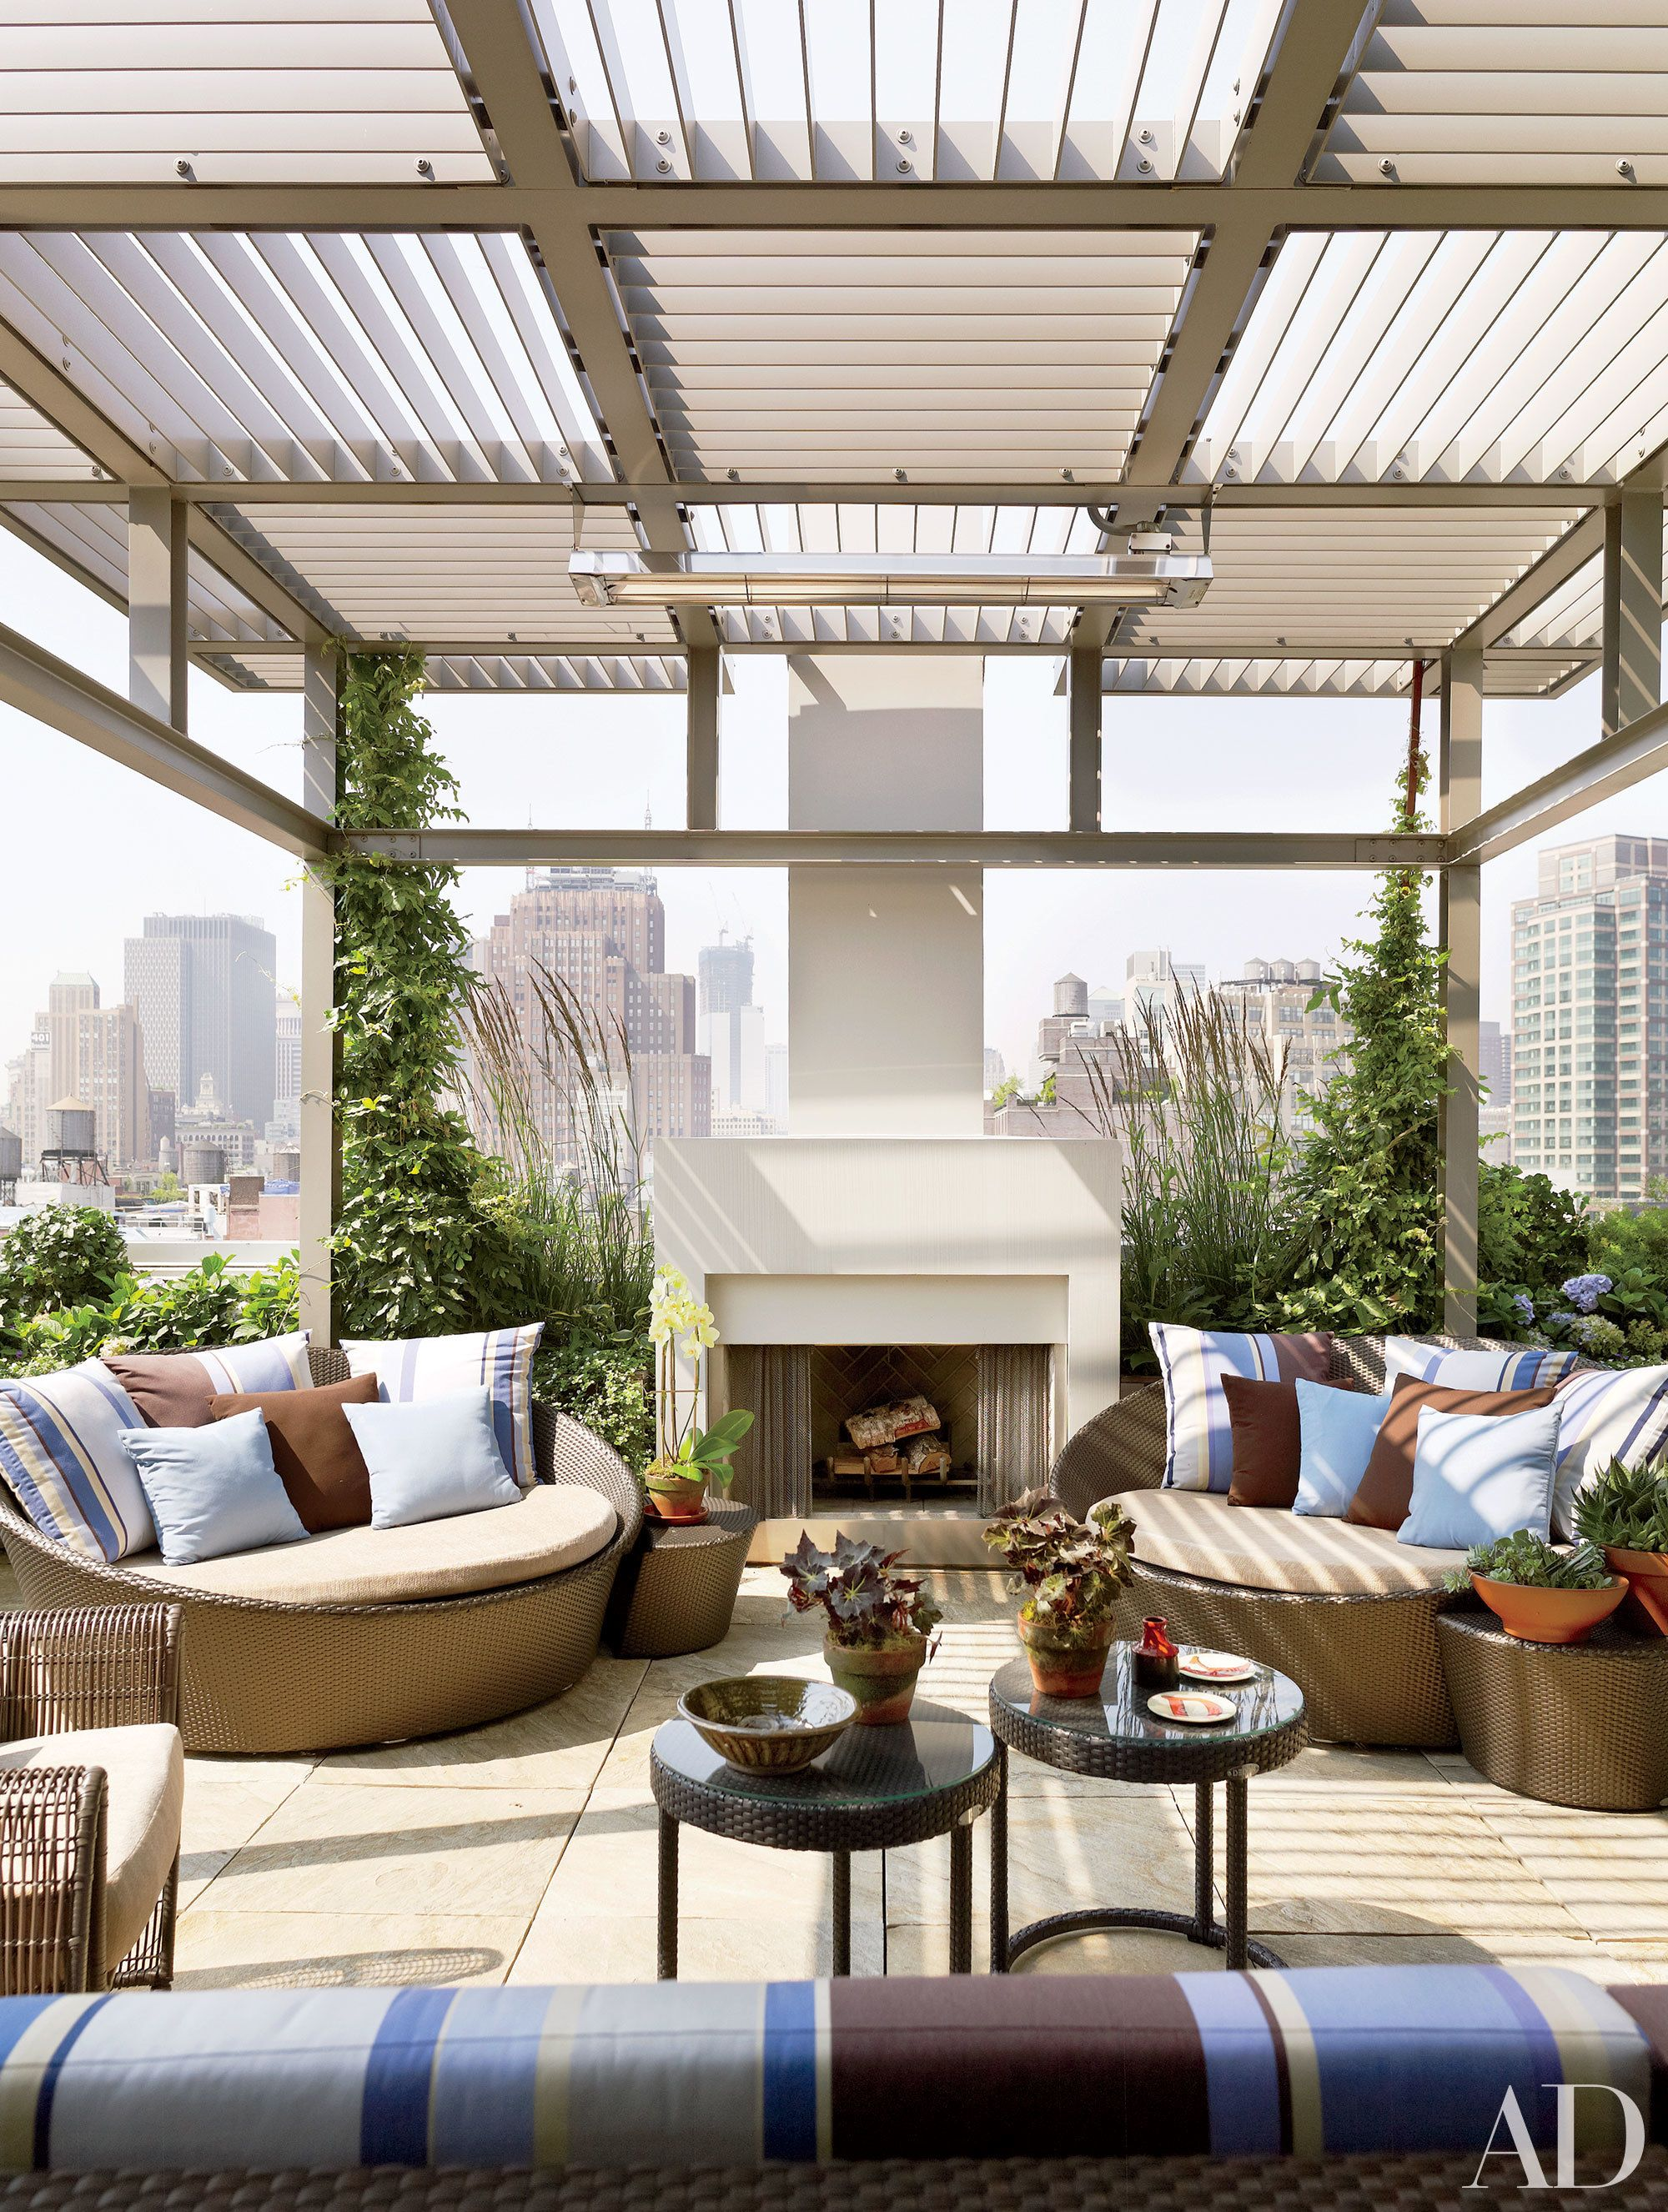 White Fireplace Inspiration - Architectural Digest